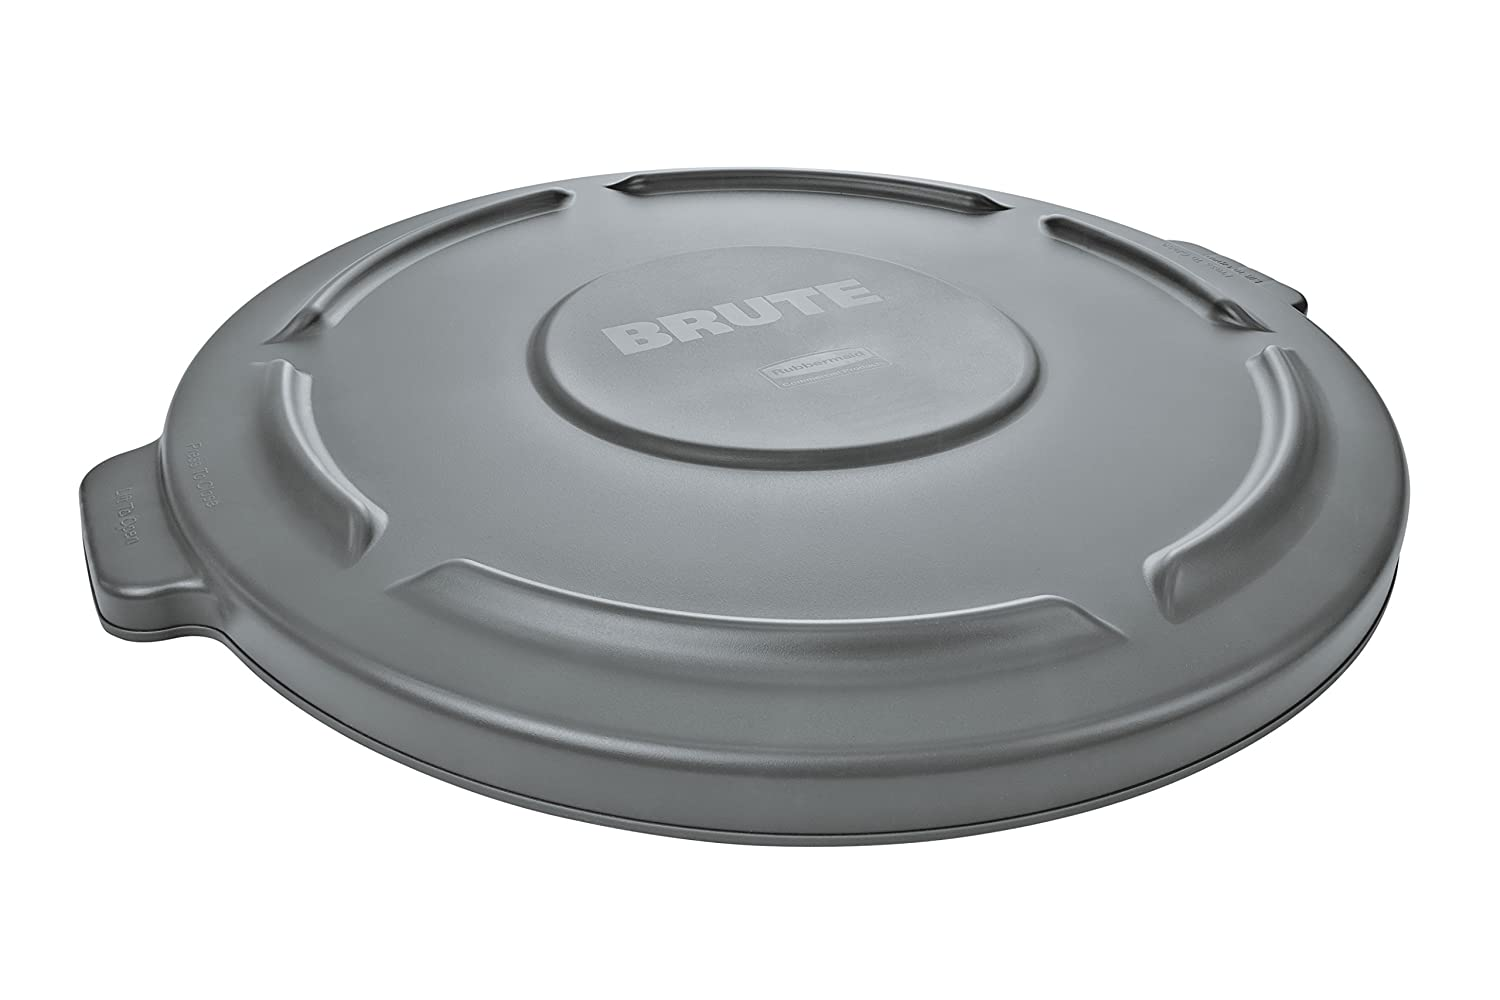 Rubbermaid Commercial Products FG264560GRAY BRUTE Heavy-Duty Round Trash/Garbage Lid, 44-Gallon, Gray